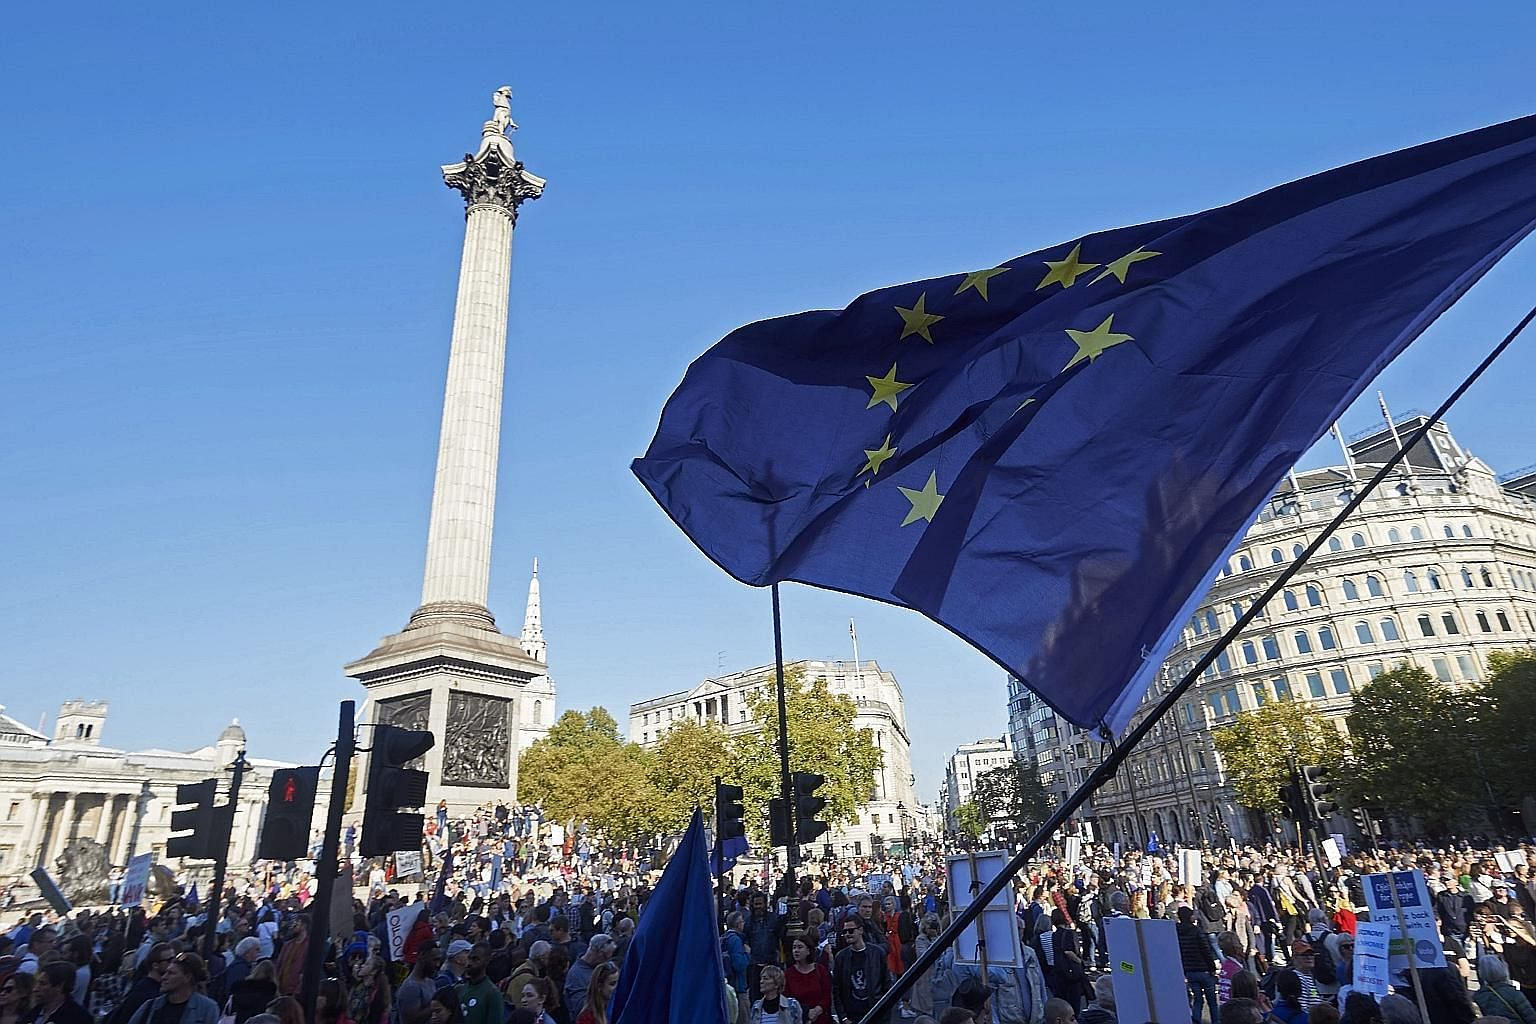 Britons dreading life outside the European Union gathered from all corners of the United Kingdom in London last Saturday to try to stop their country's looming break-up with the world's biggest trading bloc.